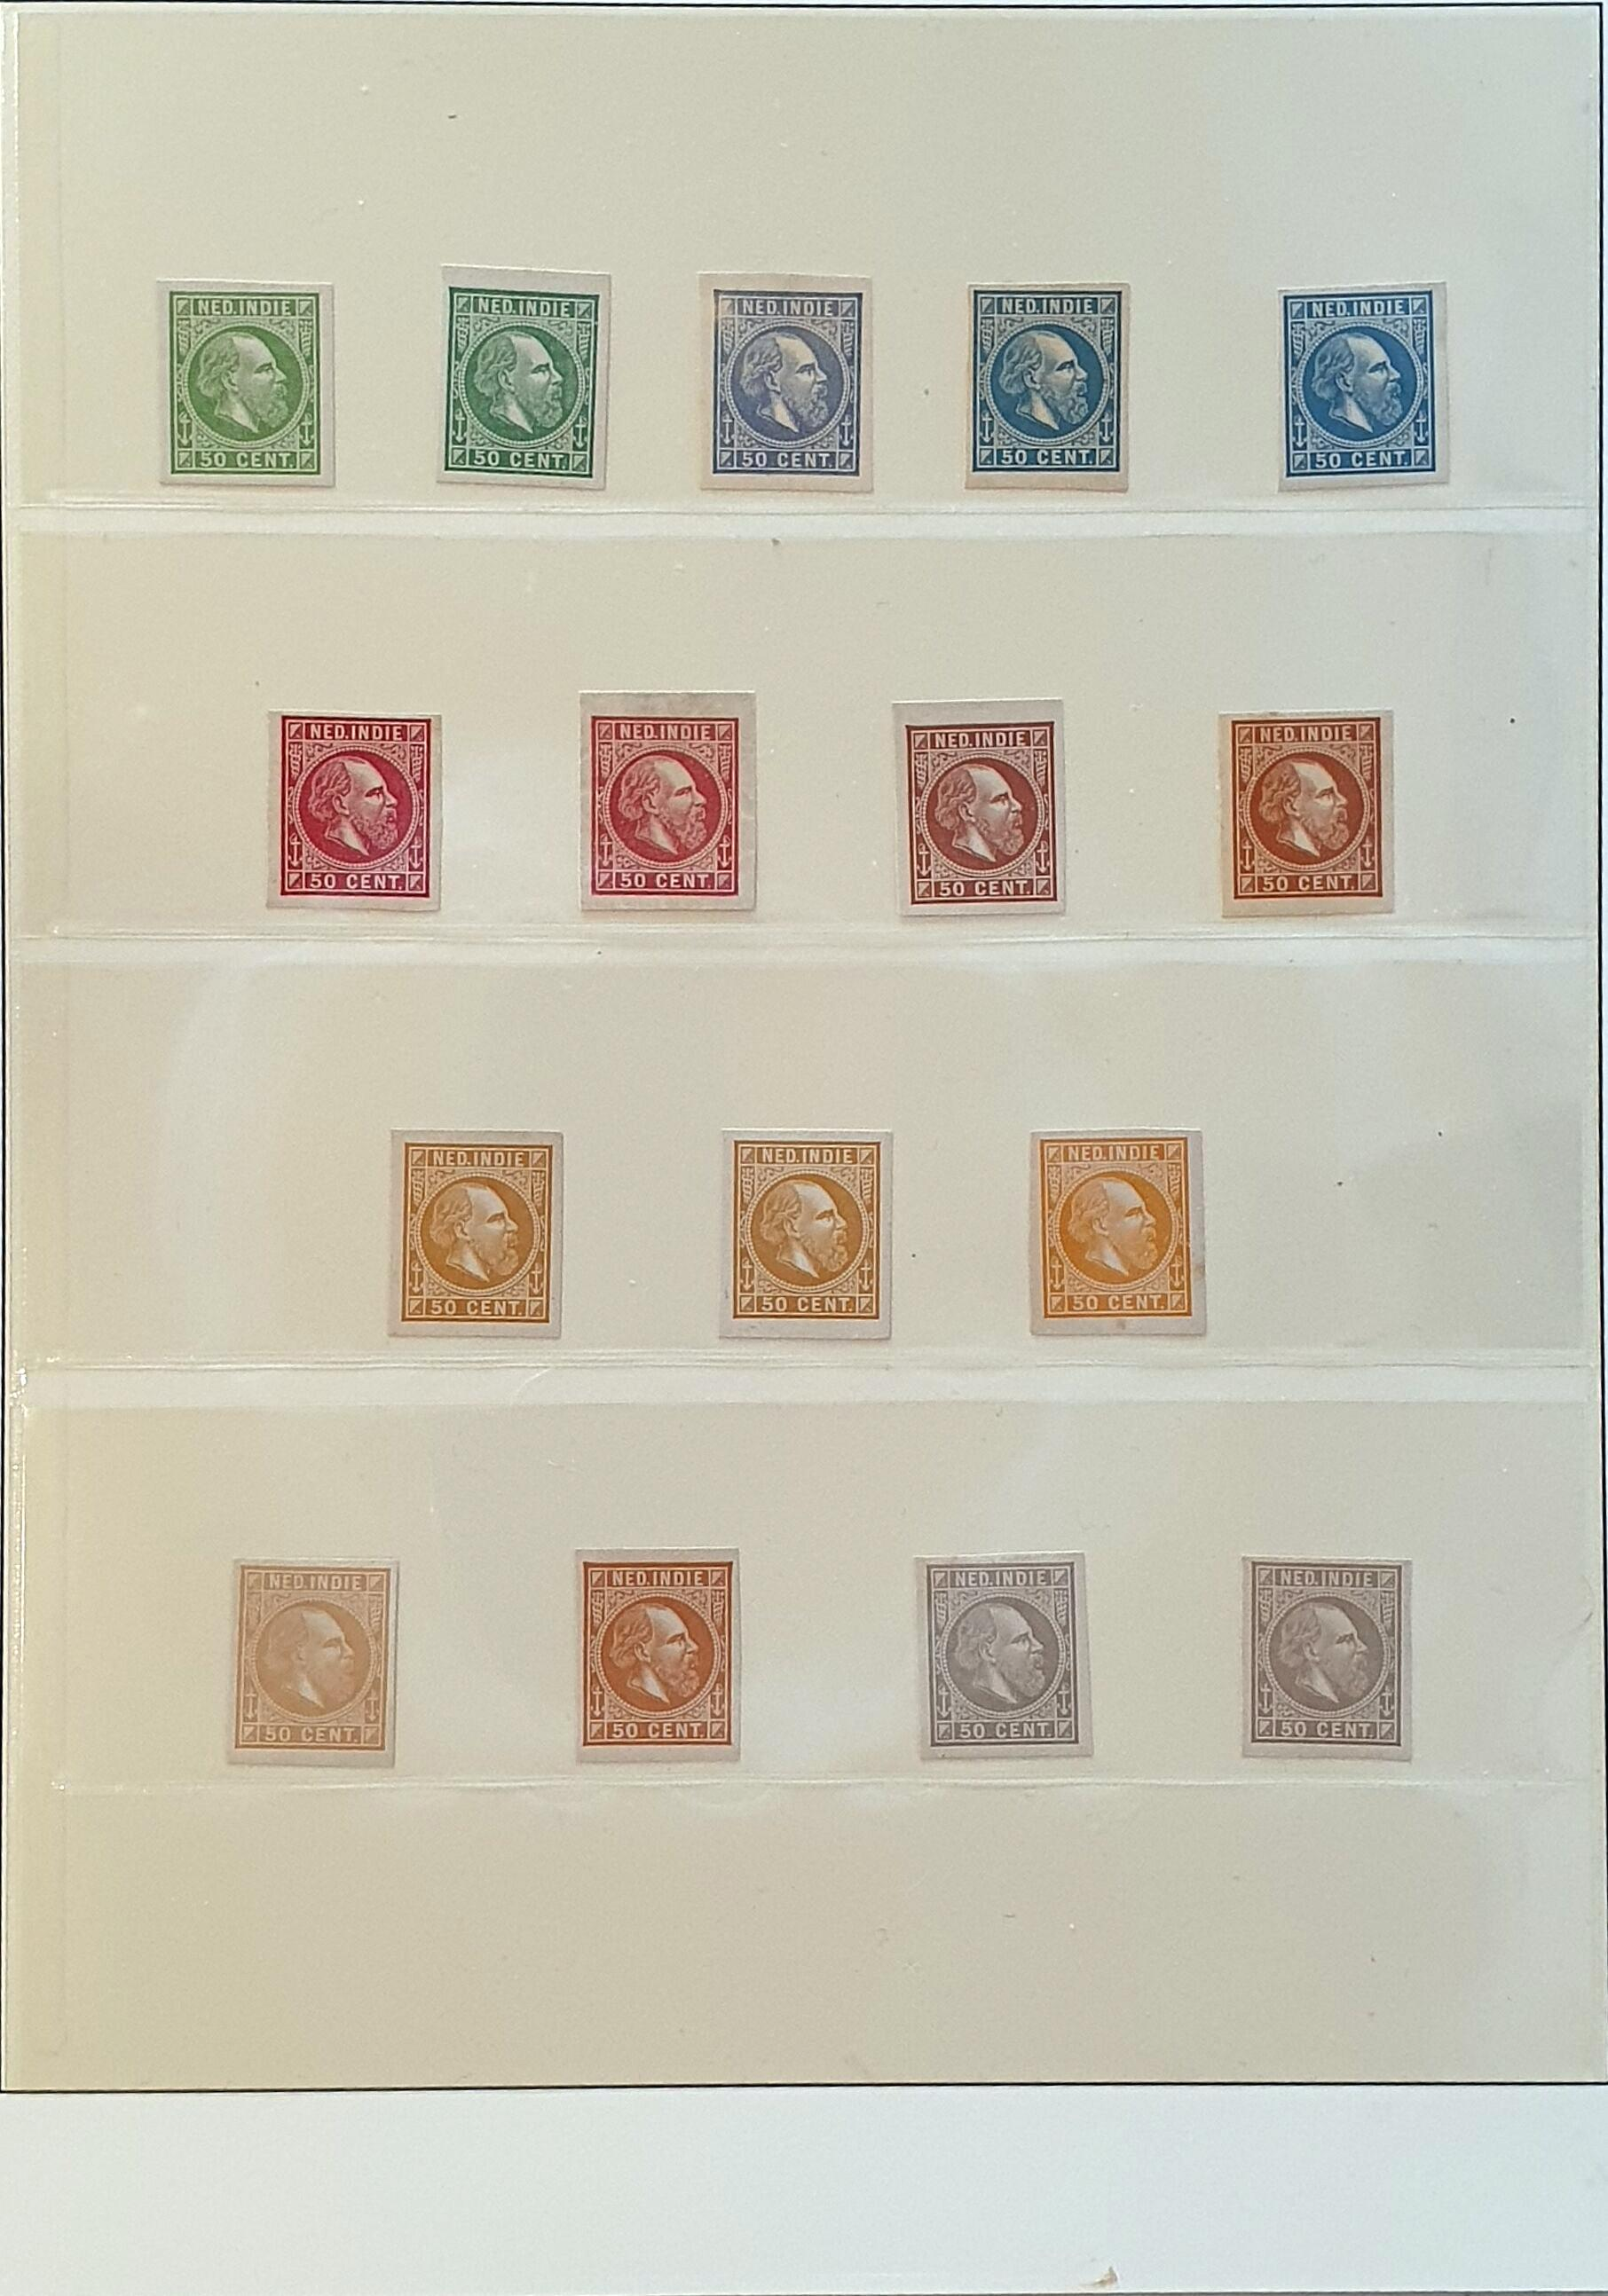 Lot 3306 - Netherlands and former colonies Netherlands Indies -  Corinphila Veilingen Auction 250-253 - Day 4 - Proofs of Netherlands former colonies